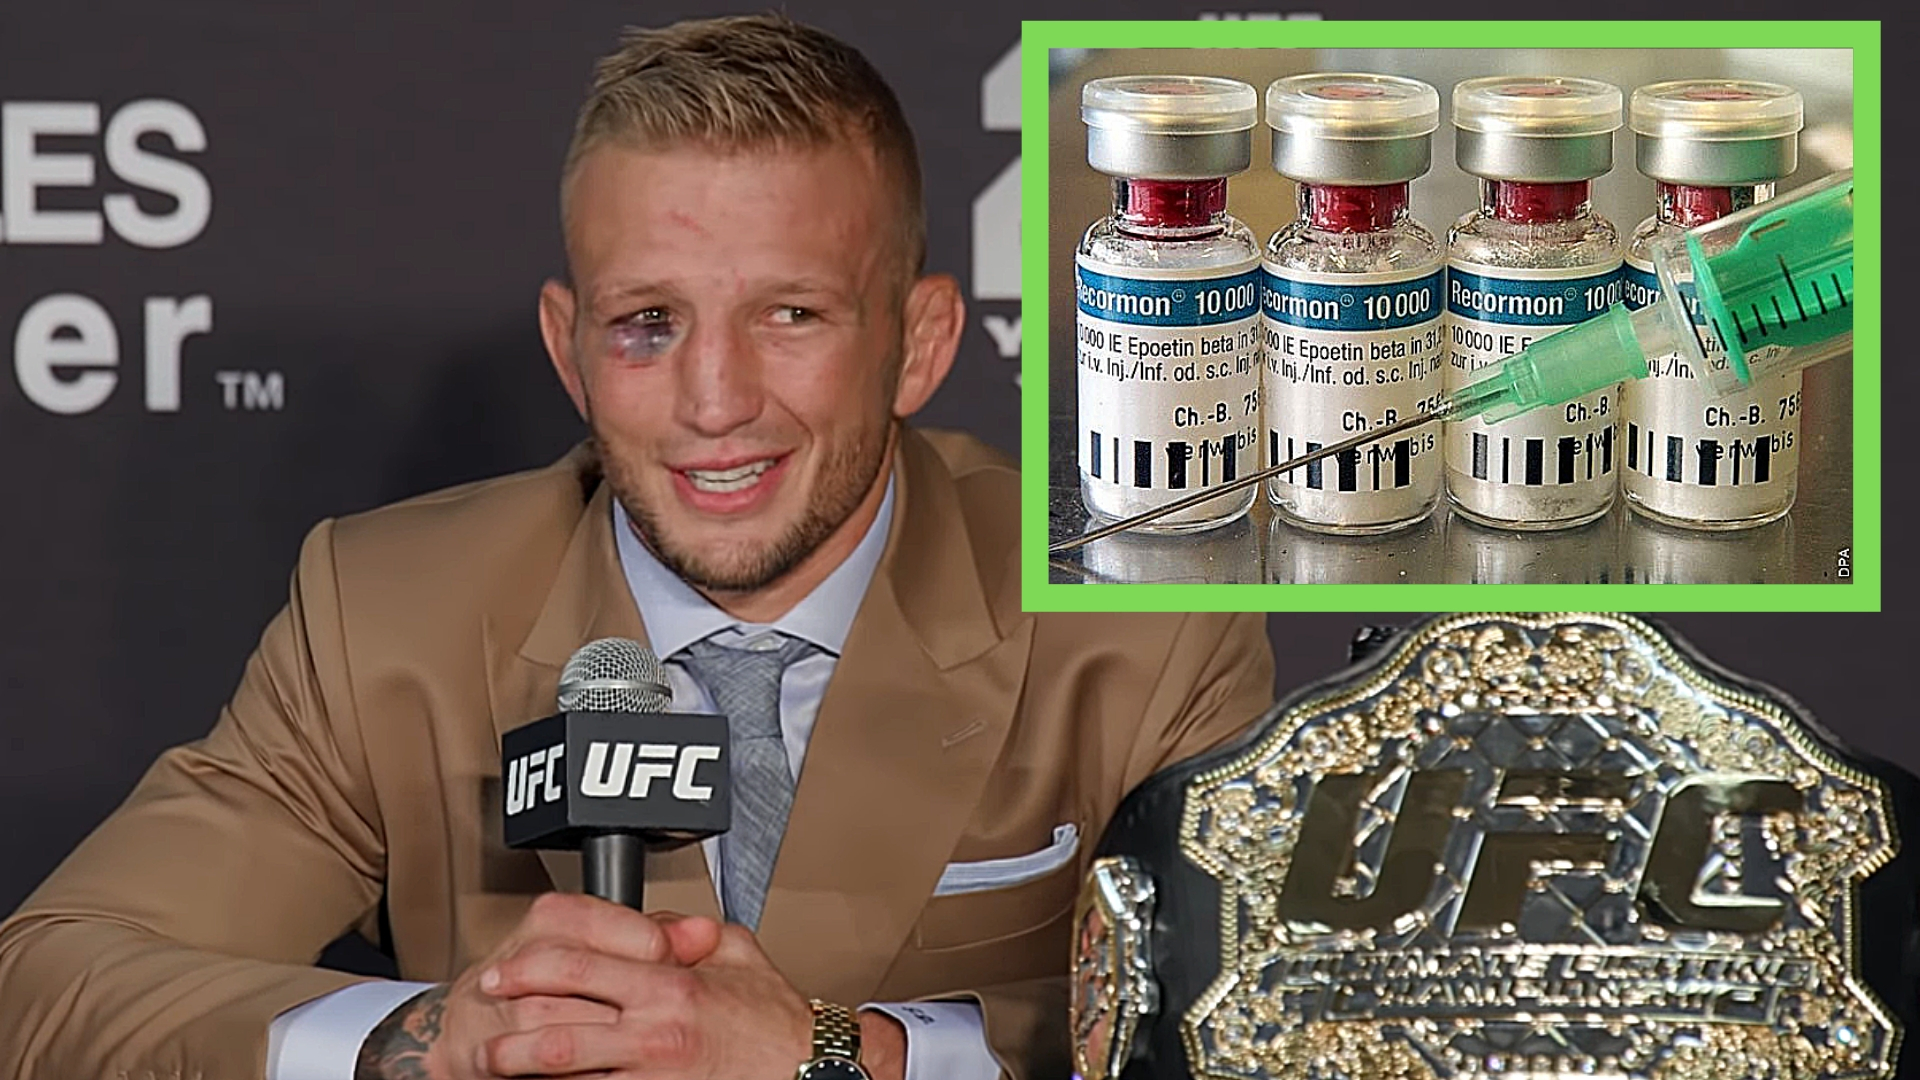 TJ Dillashaw Tests Positive For EPO - Analysis Of UFC PED Choices